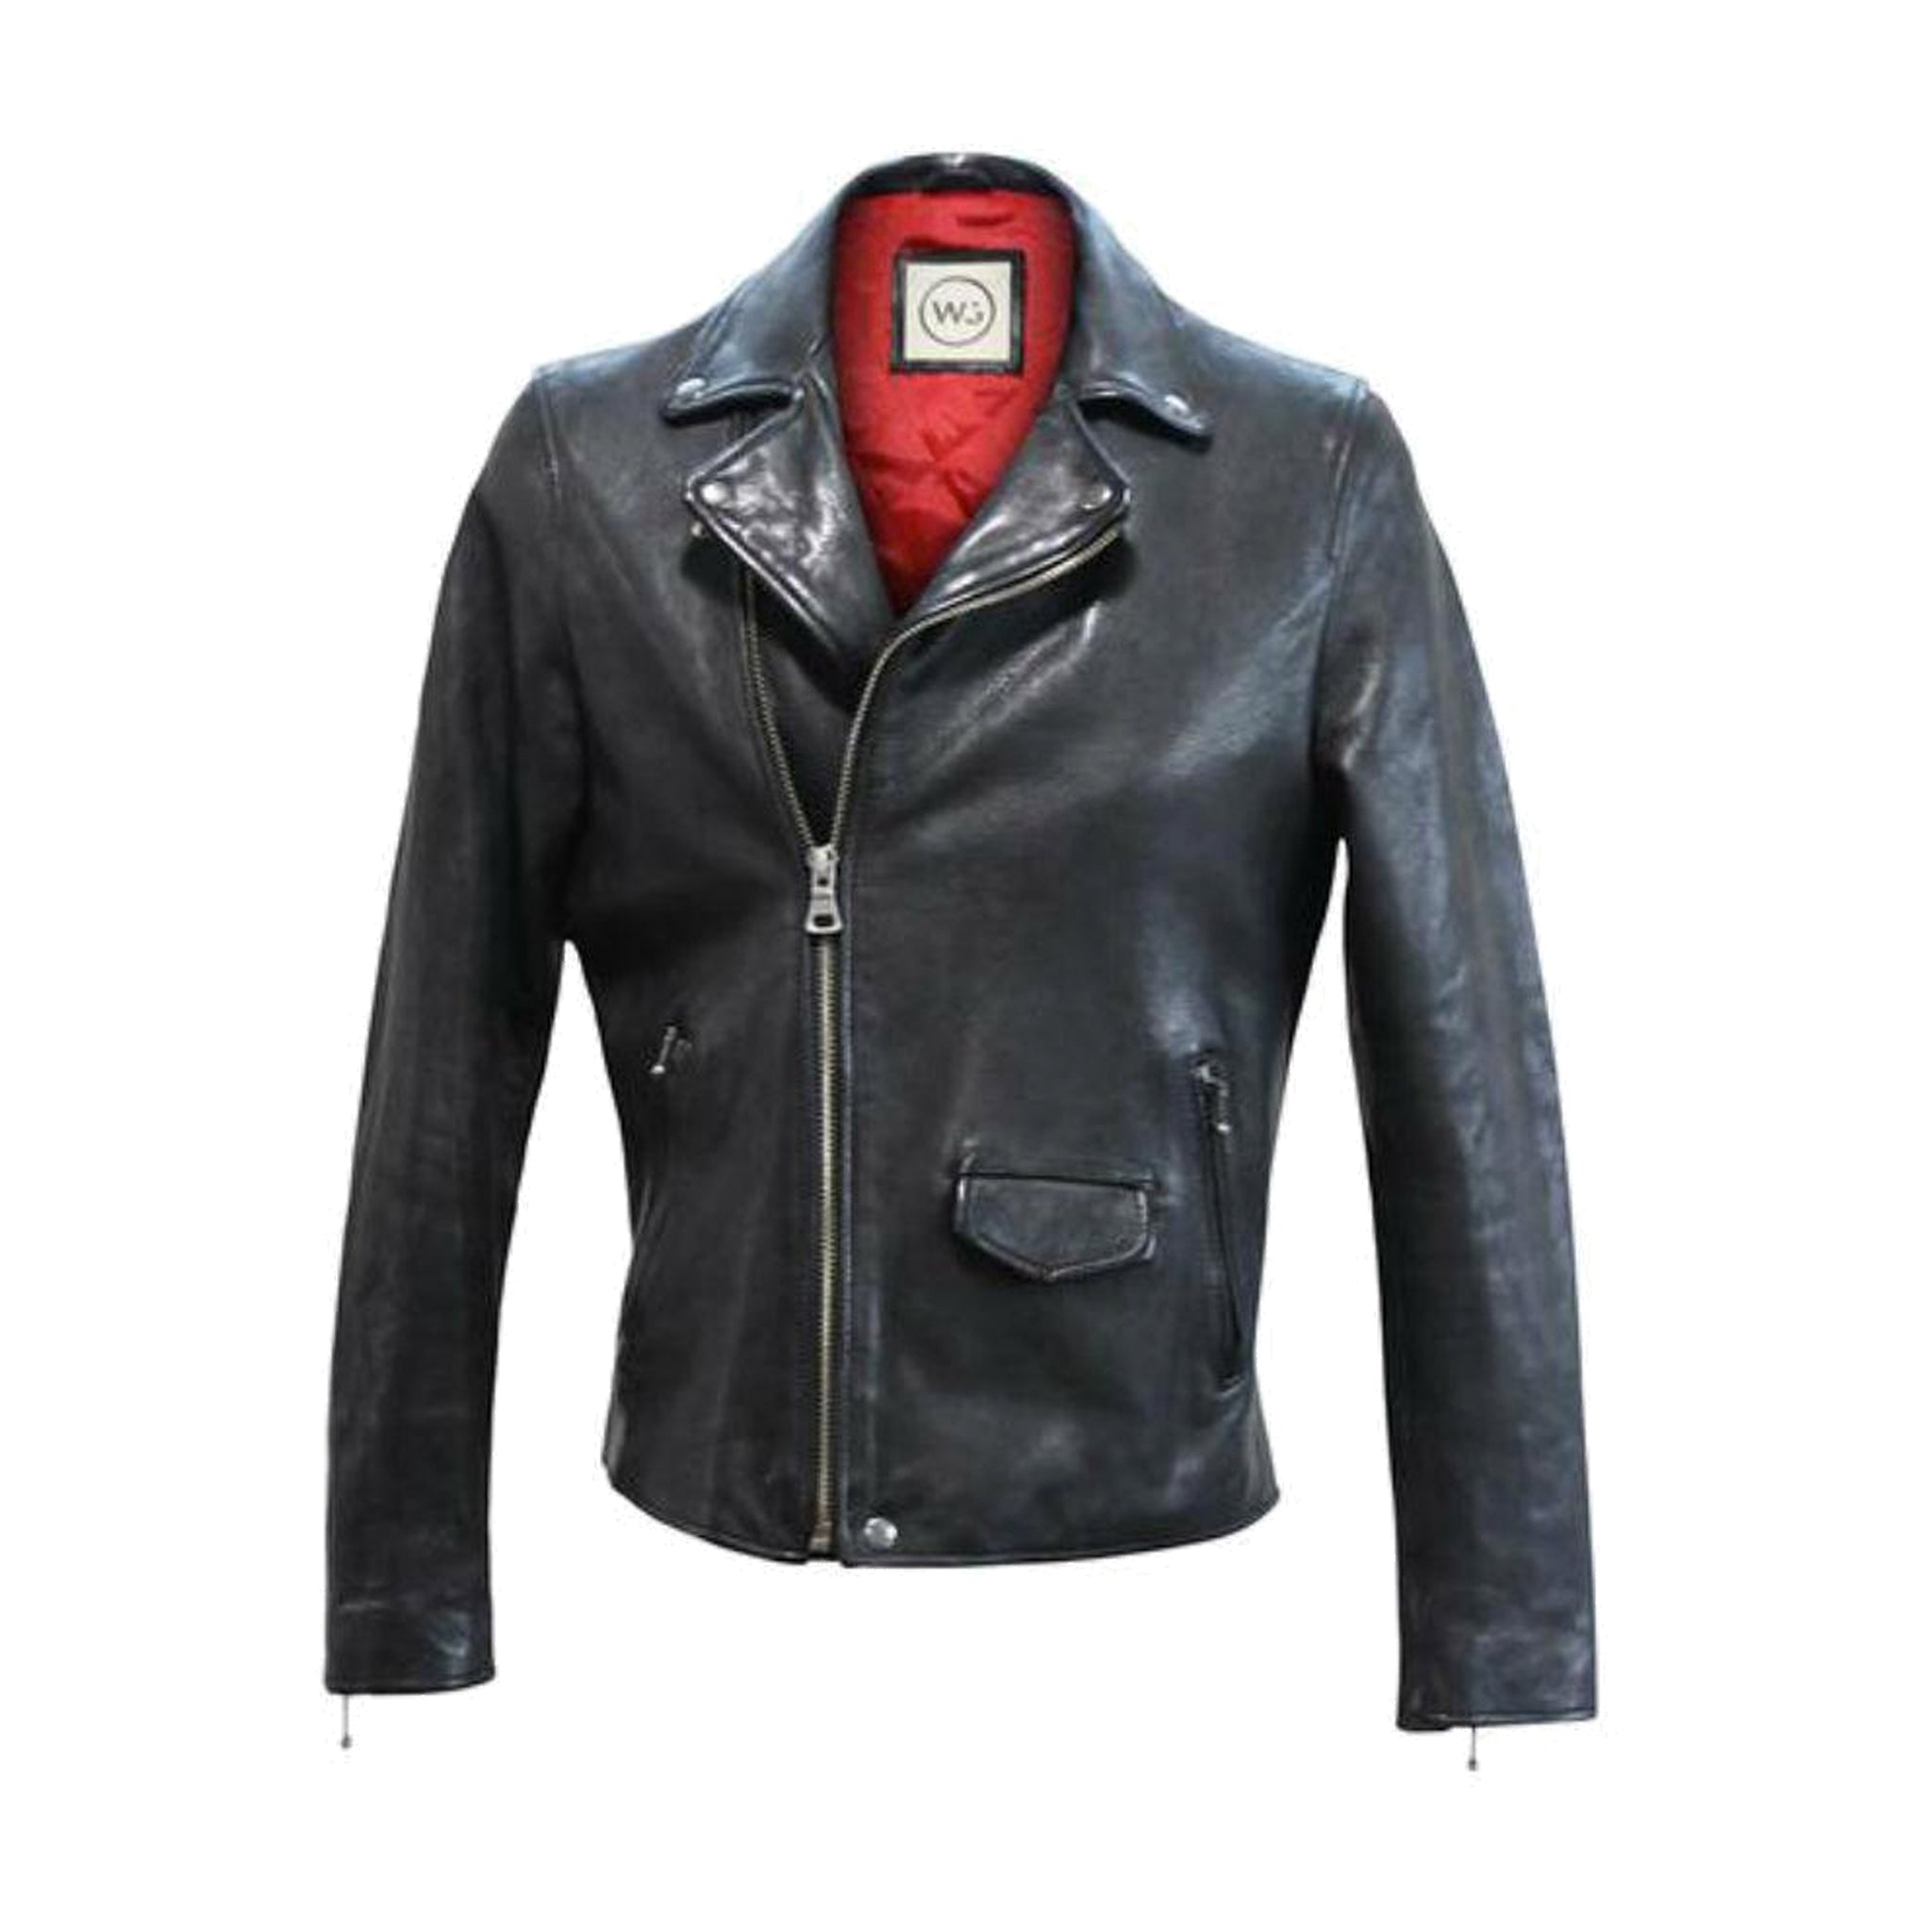 Brando Leather Jacket L Men's Clothing